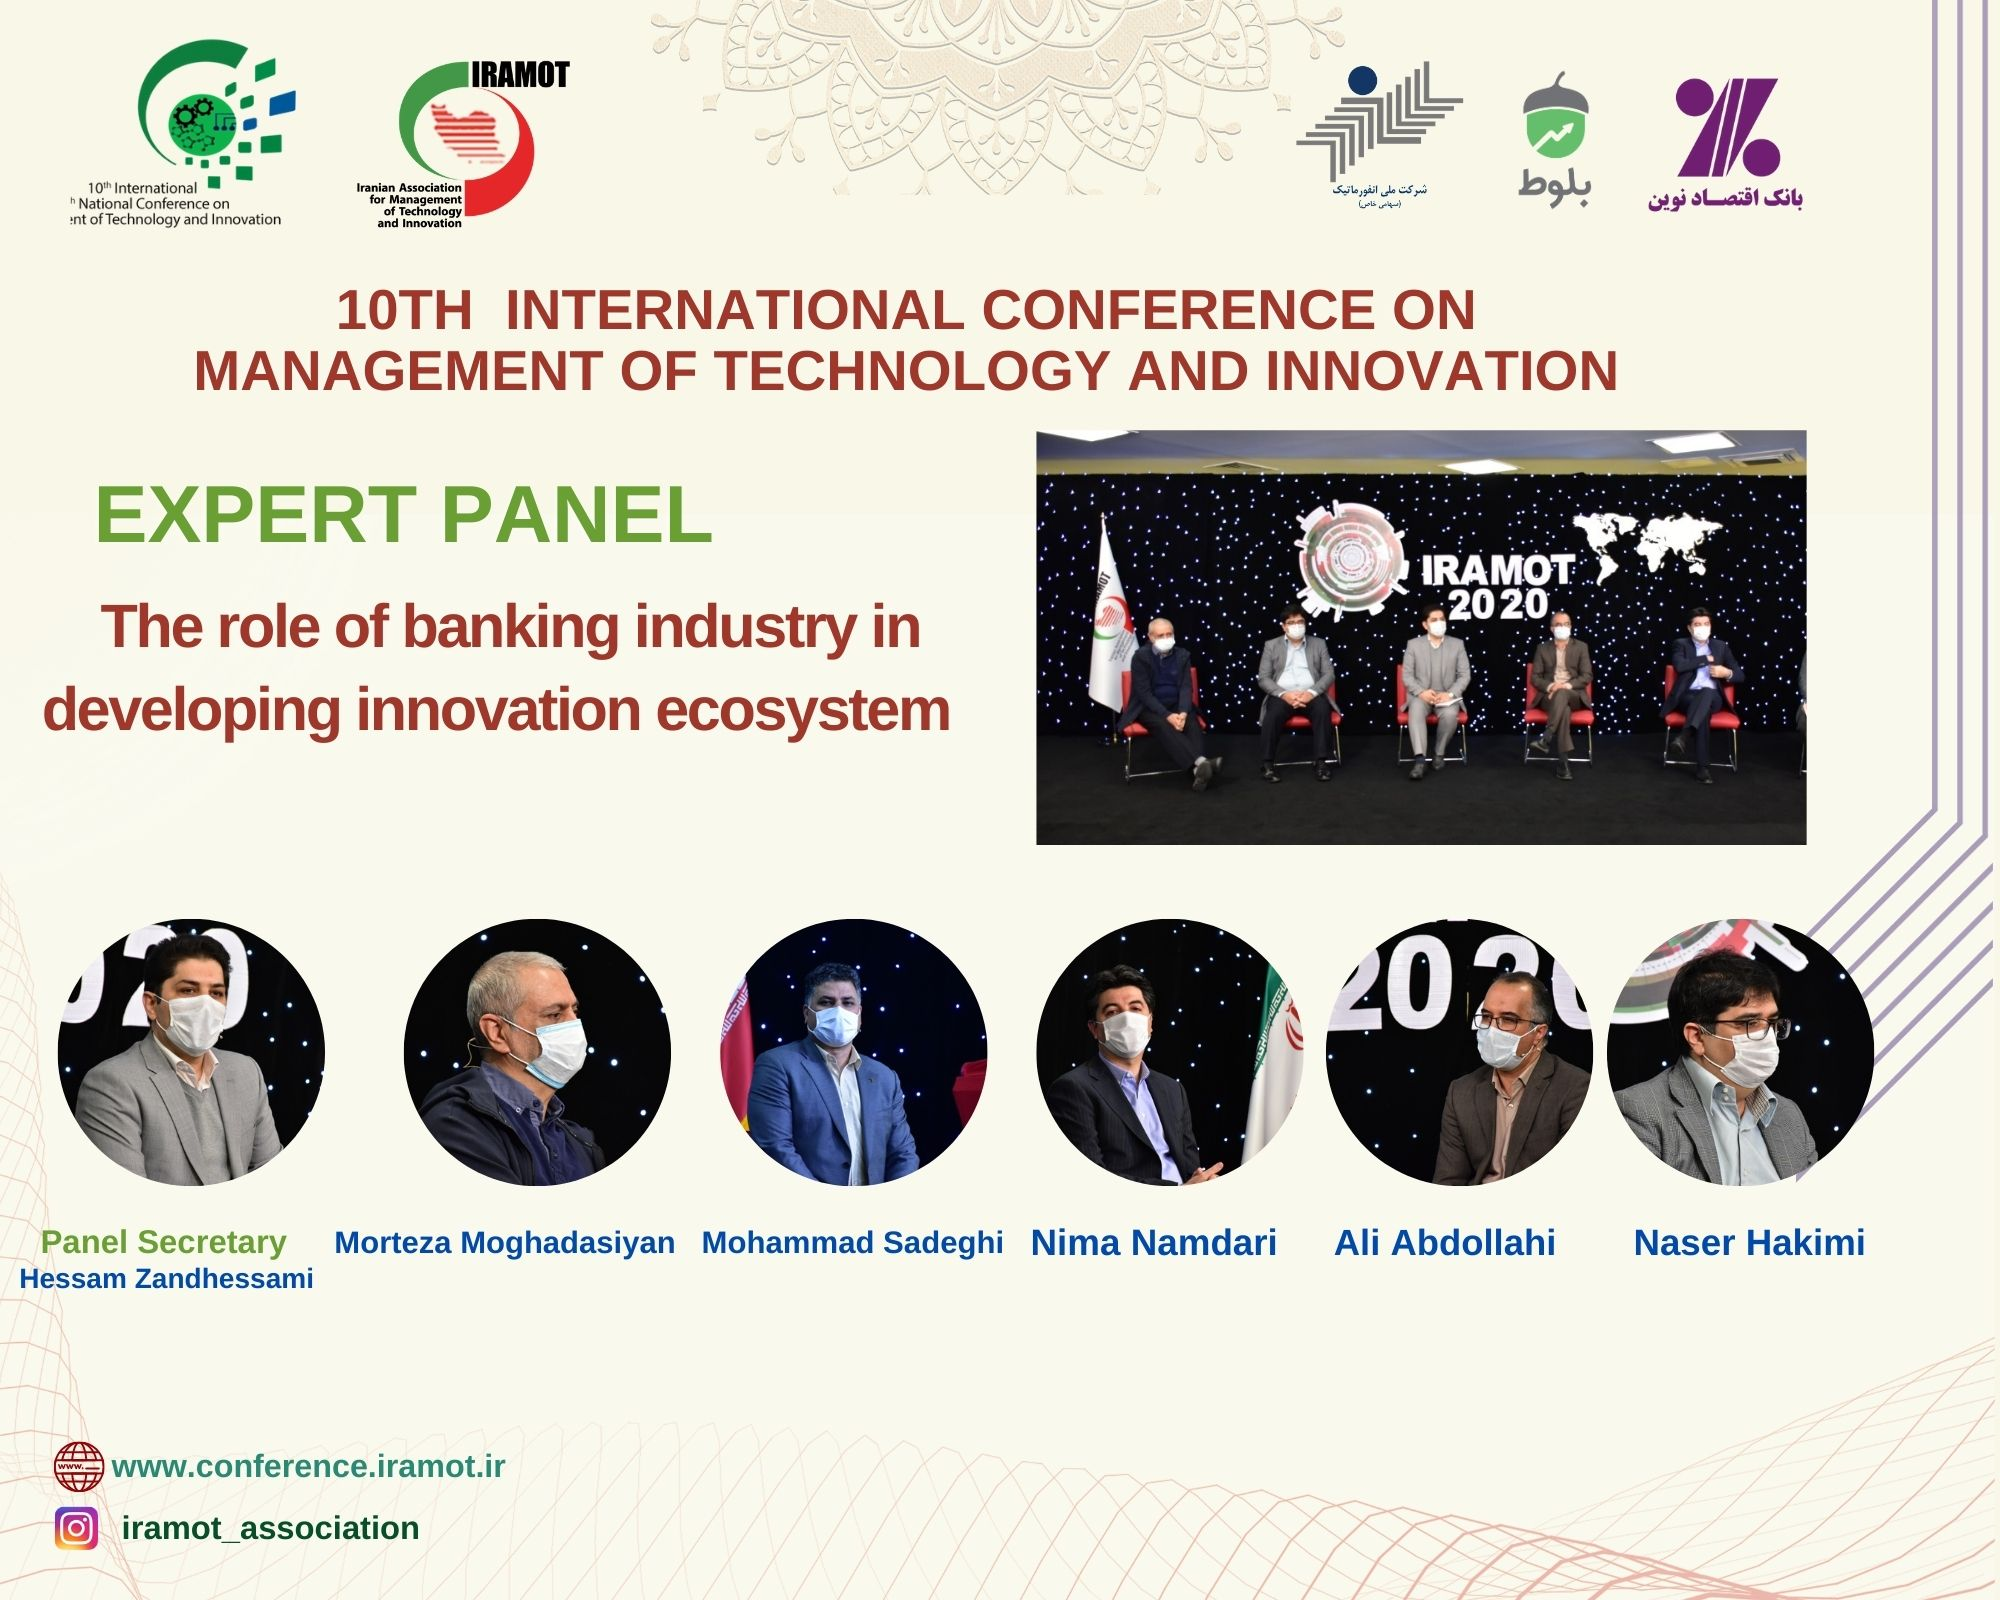 http://www.conference.iramot.ir/wp-content/uploads/2020/12/پانل-تخصصی-1.jpg